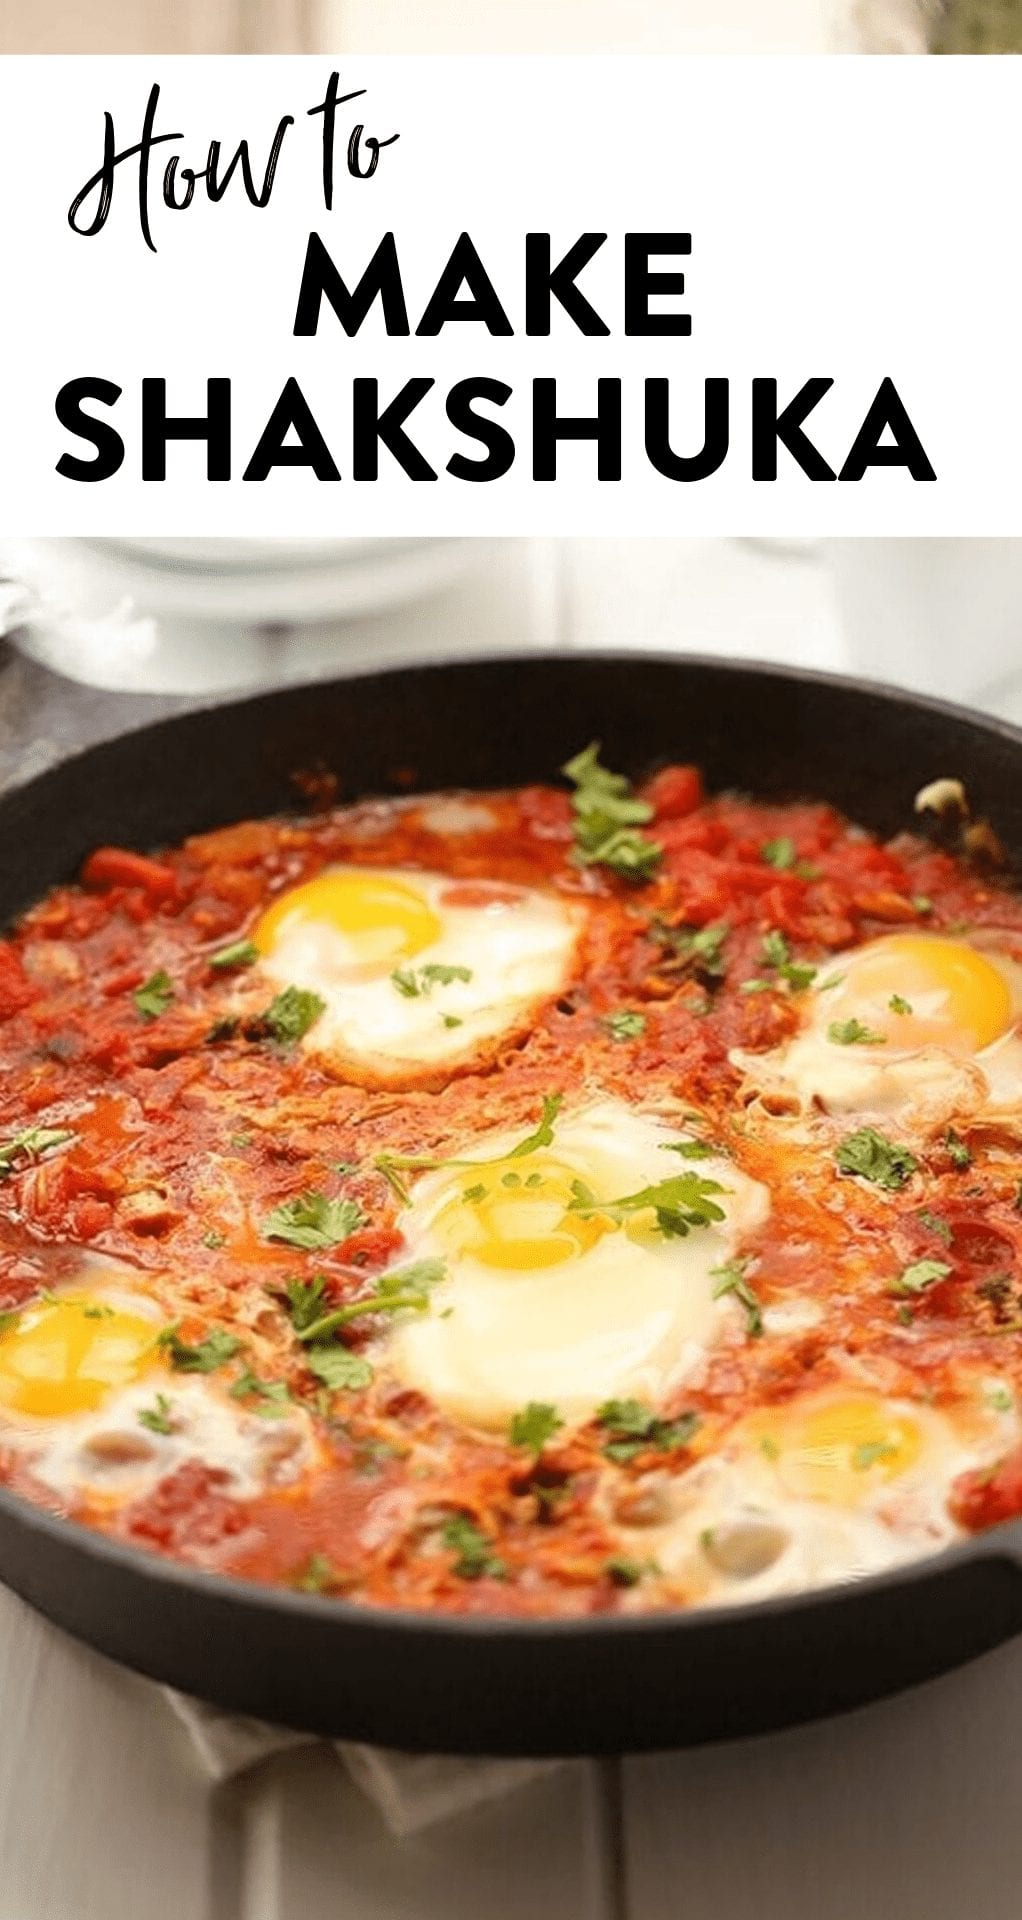 Curious how to make shakshuka? This tutorial will walk you through a basic shakshuka recipe so you can make this delicious middle eastern dish at home! #shakshuka